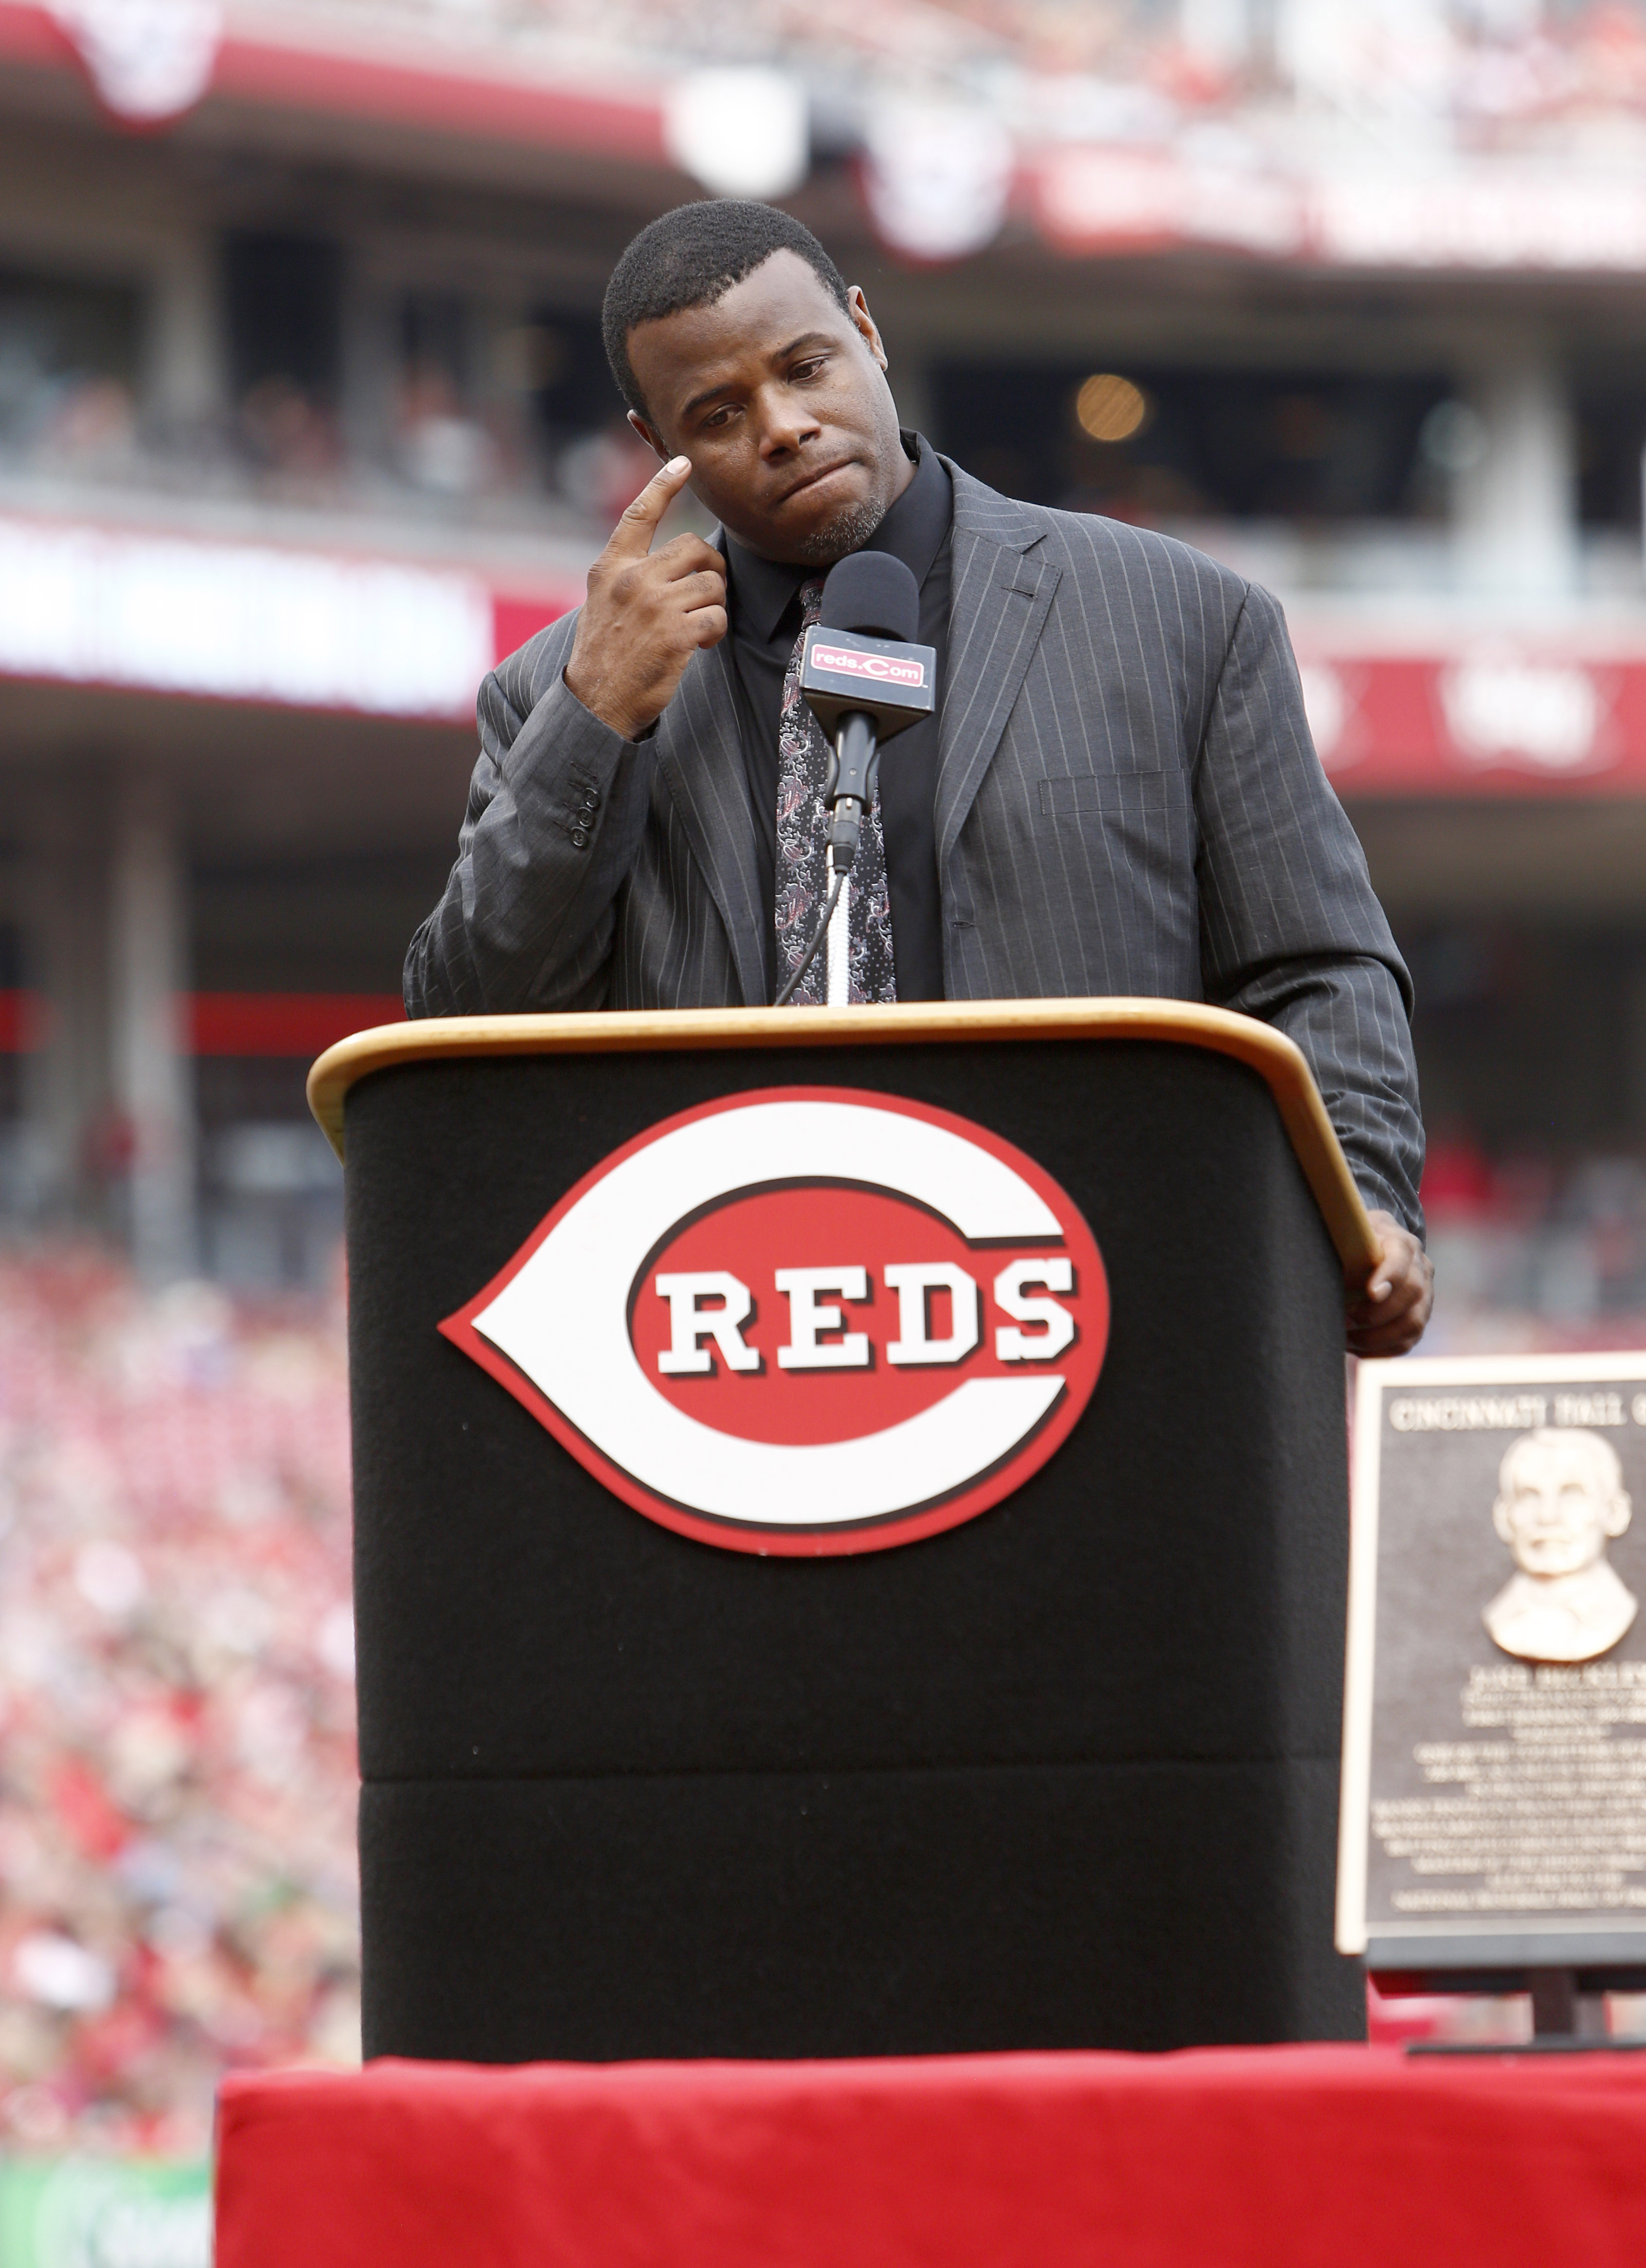 Griffey leads the class of 2016.